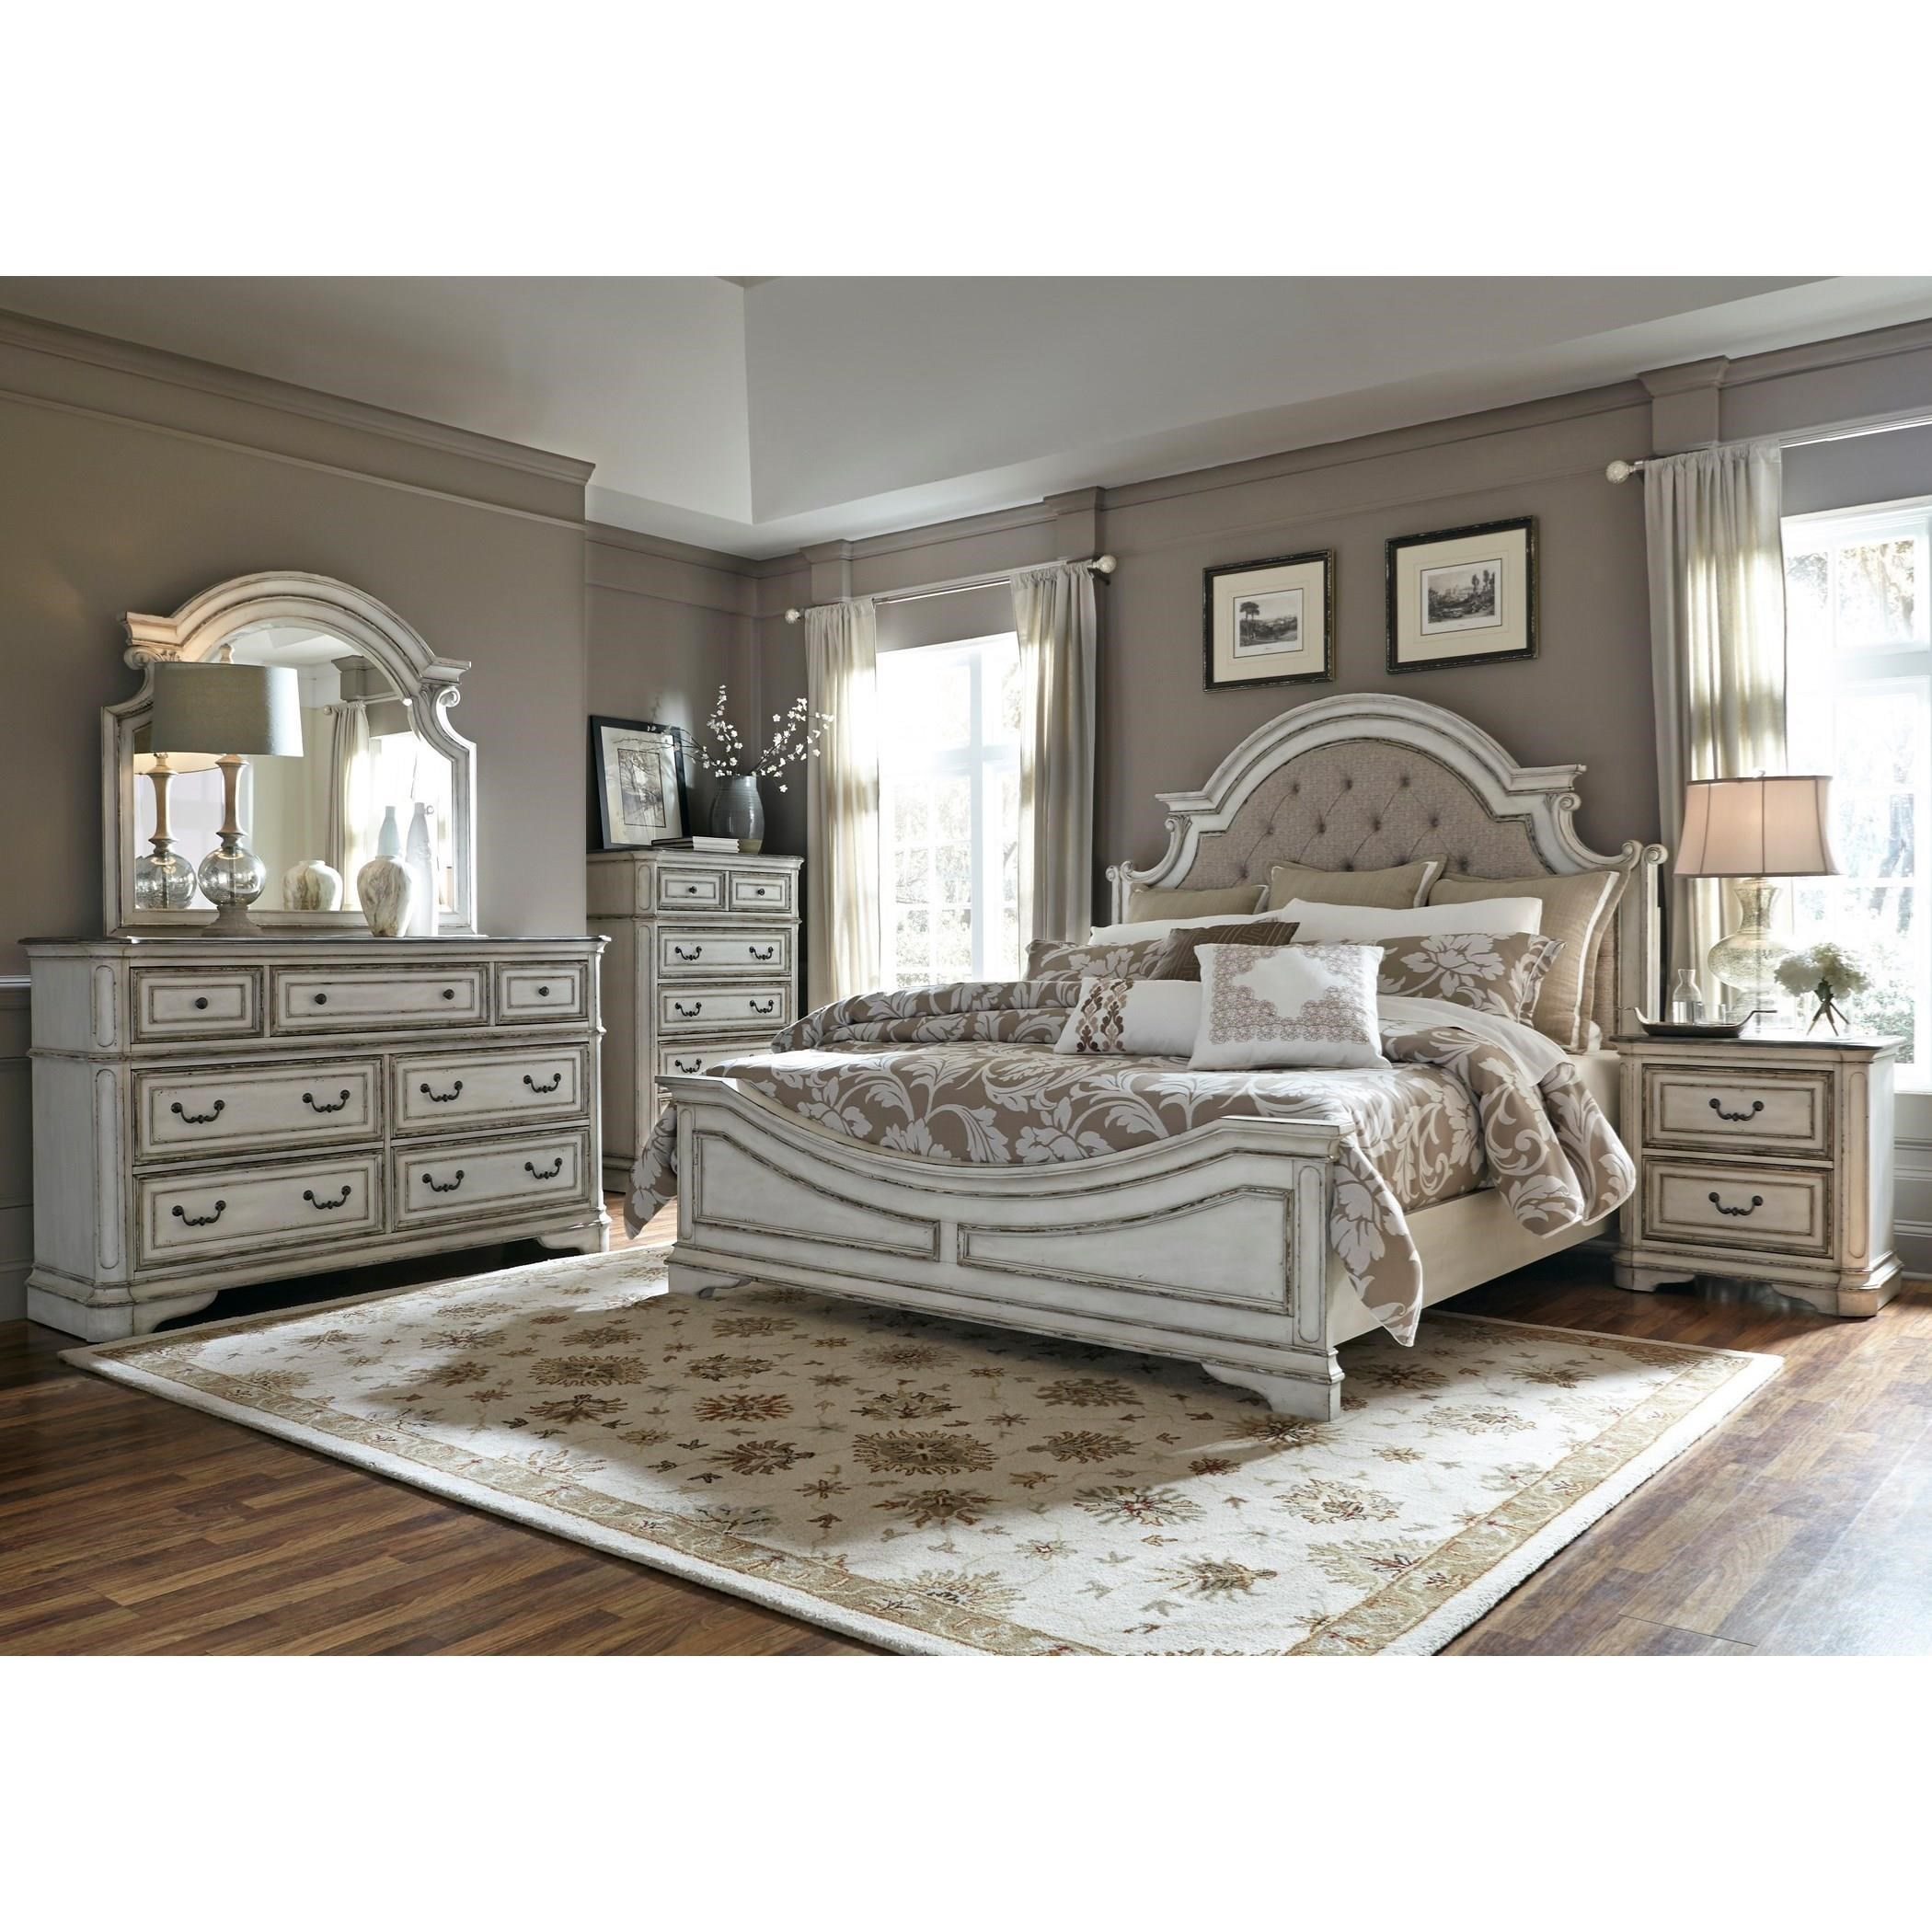 Liberty Furniture Magnolia Manor 3 Piece Bedroom Set Includes King